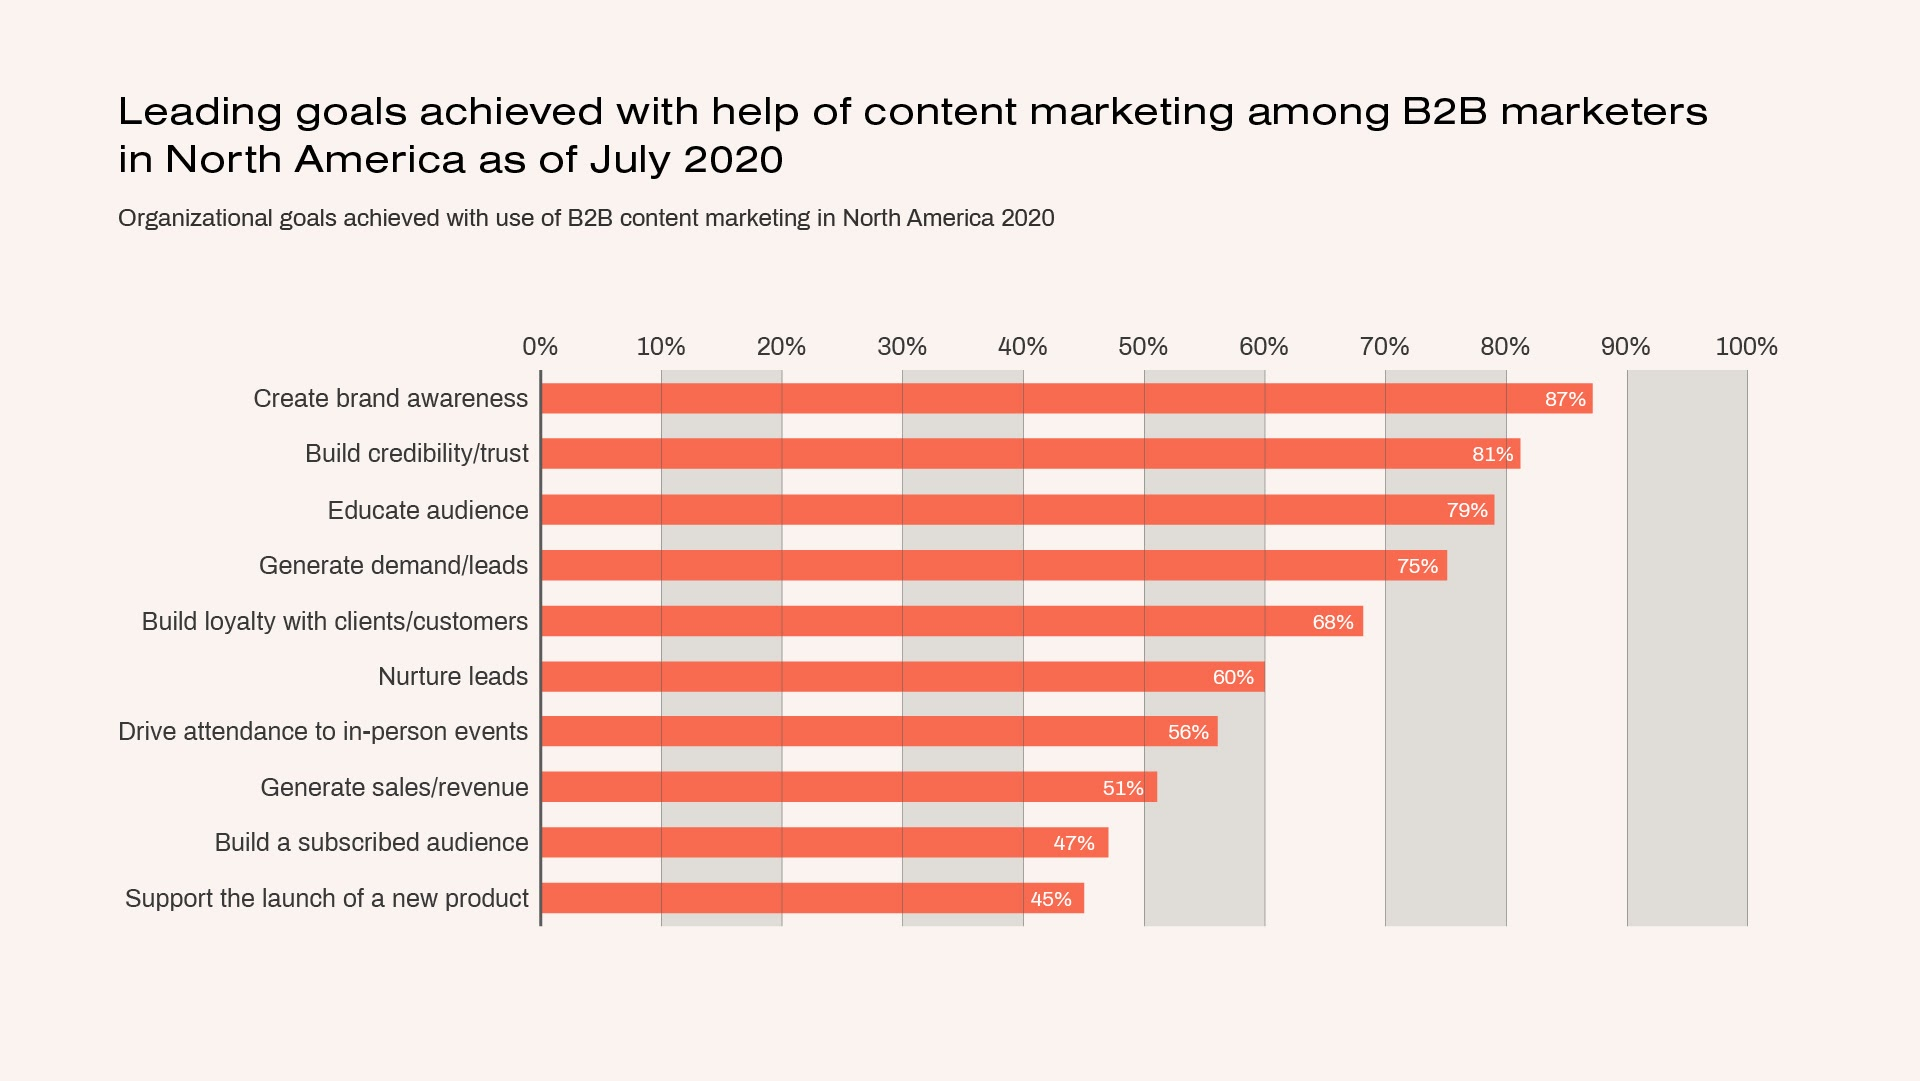 Top organization goals achieved with B2B content marketing in 2020